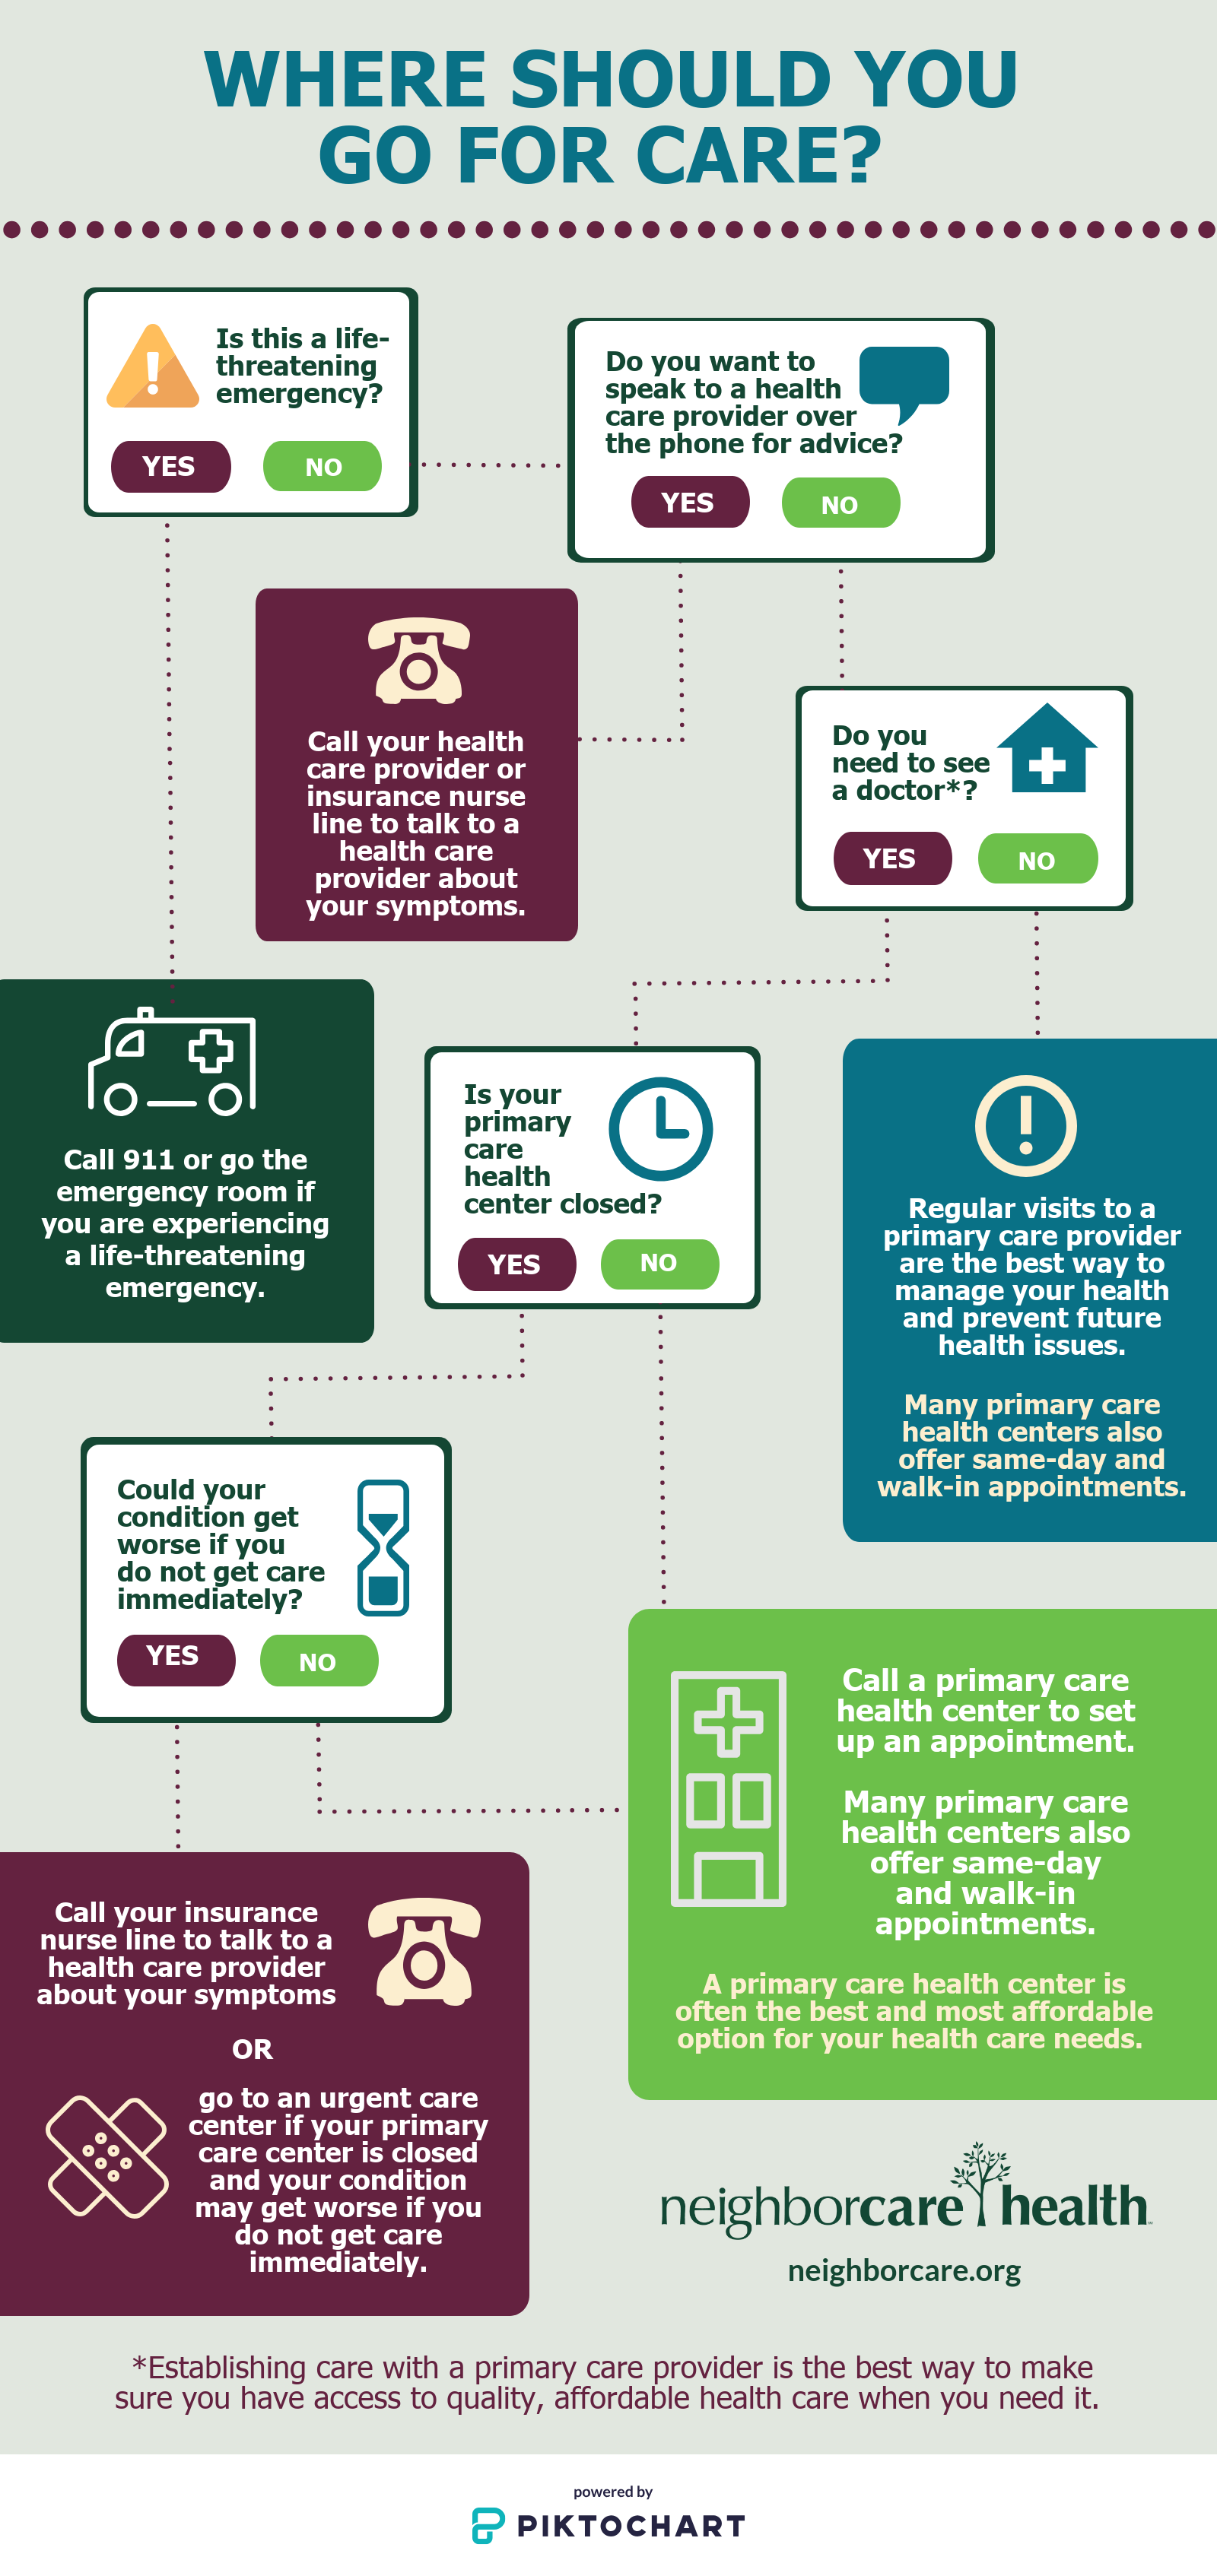 Infographic showing where to go for care